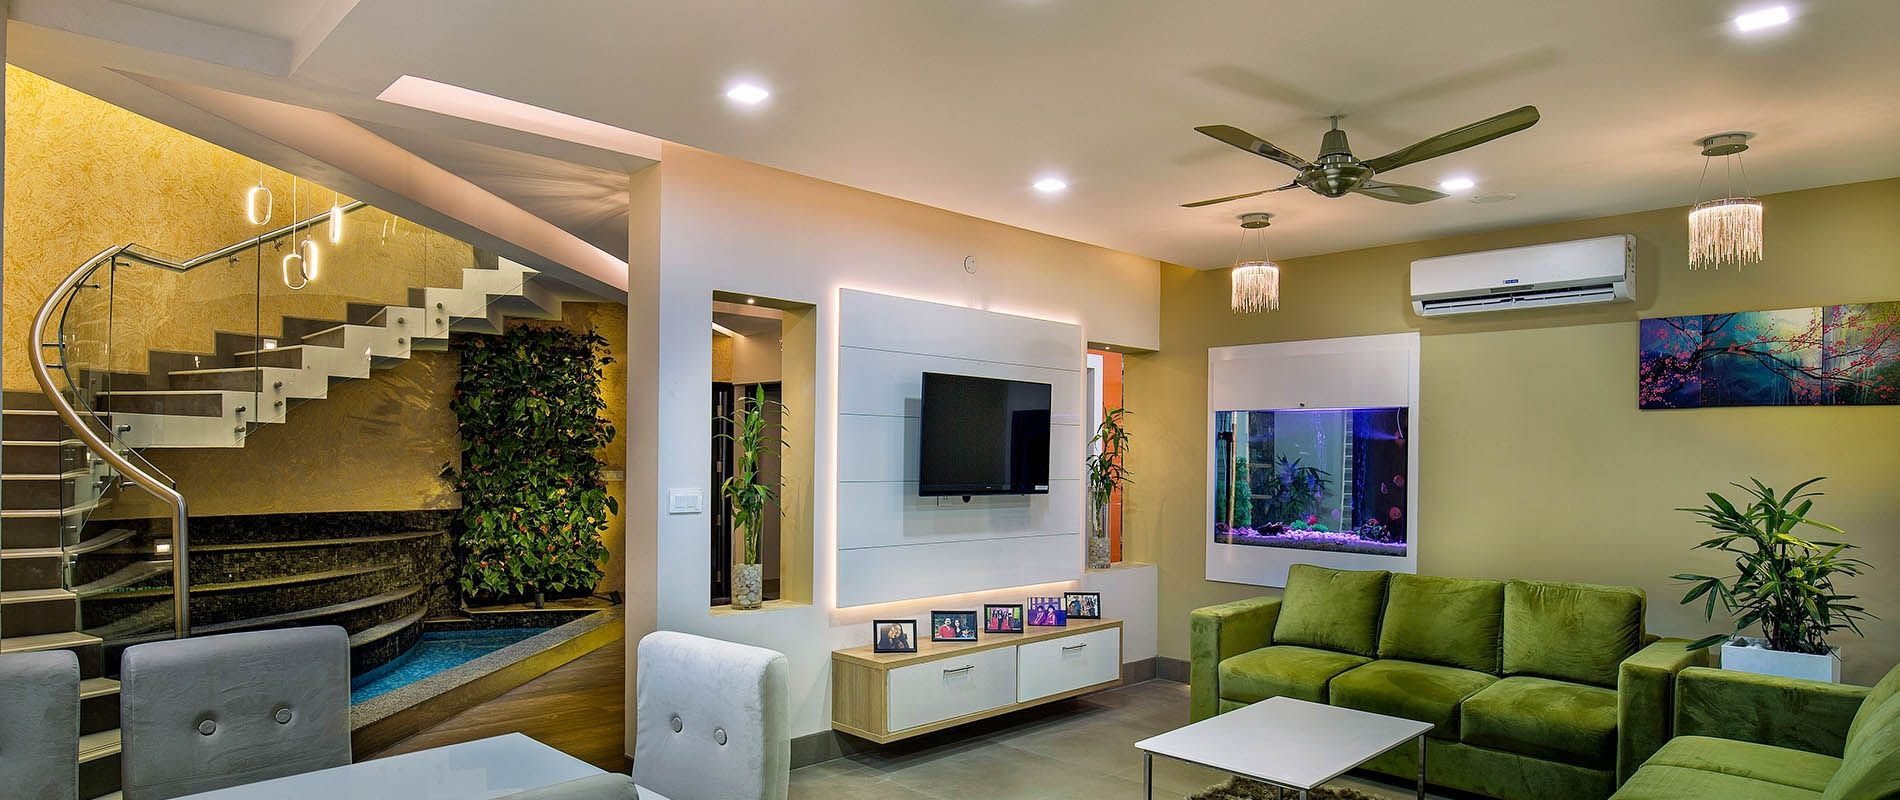 Venkateswara home interior designers in gurgaon offers world class designing services for and office pocket friendly prices also rh pinterest